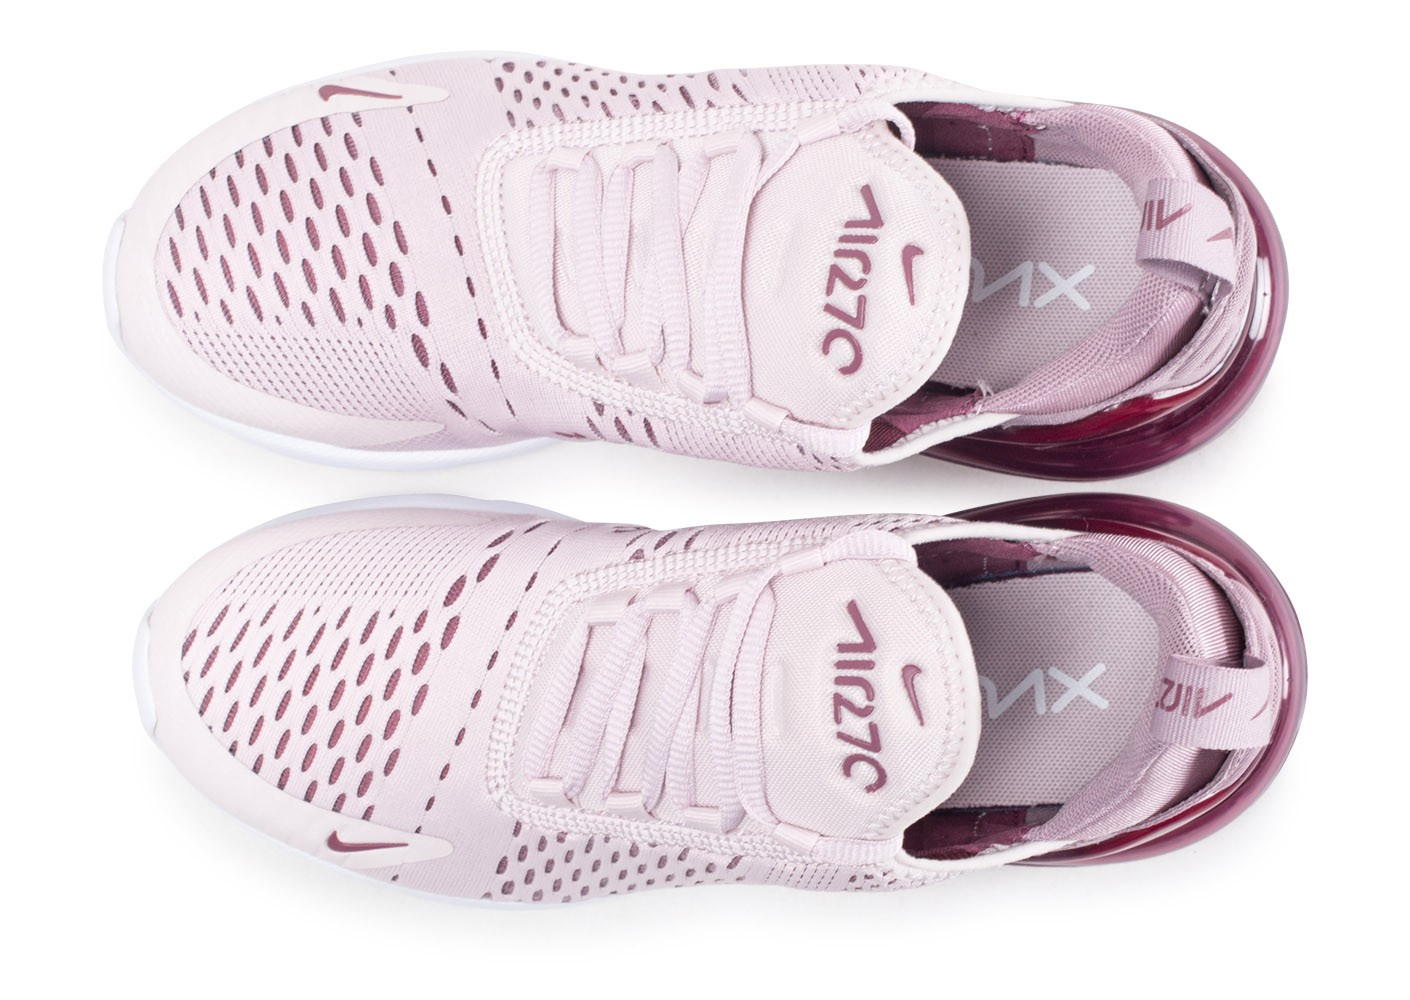 taille 40 9254b 144d8 Nike Air Max 270 rose - Chaussures Baskets femme - Chausport